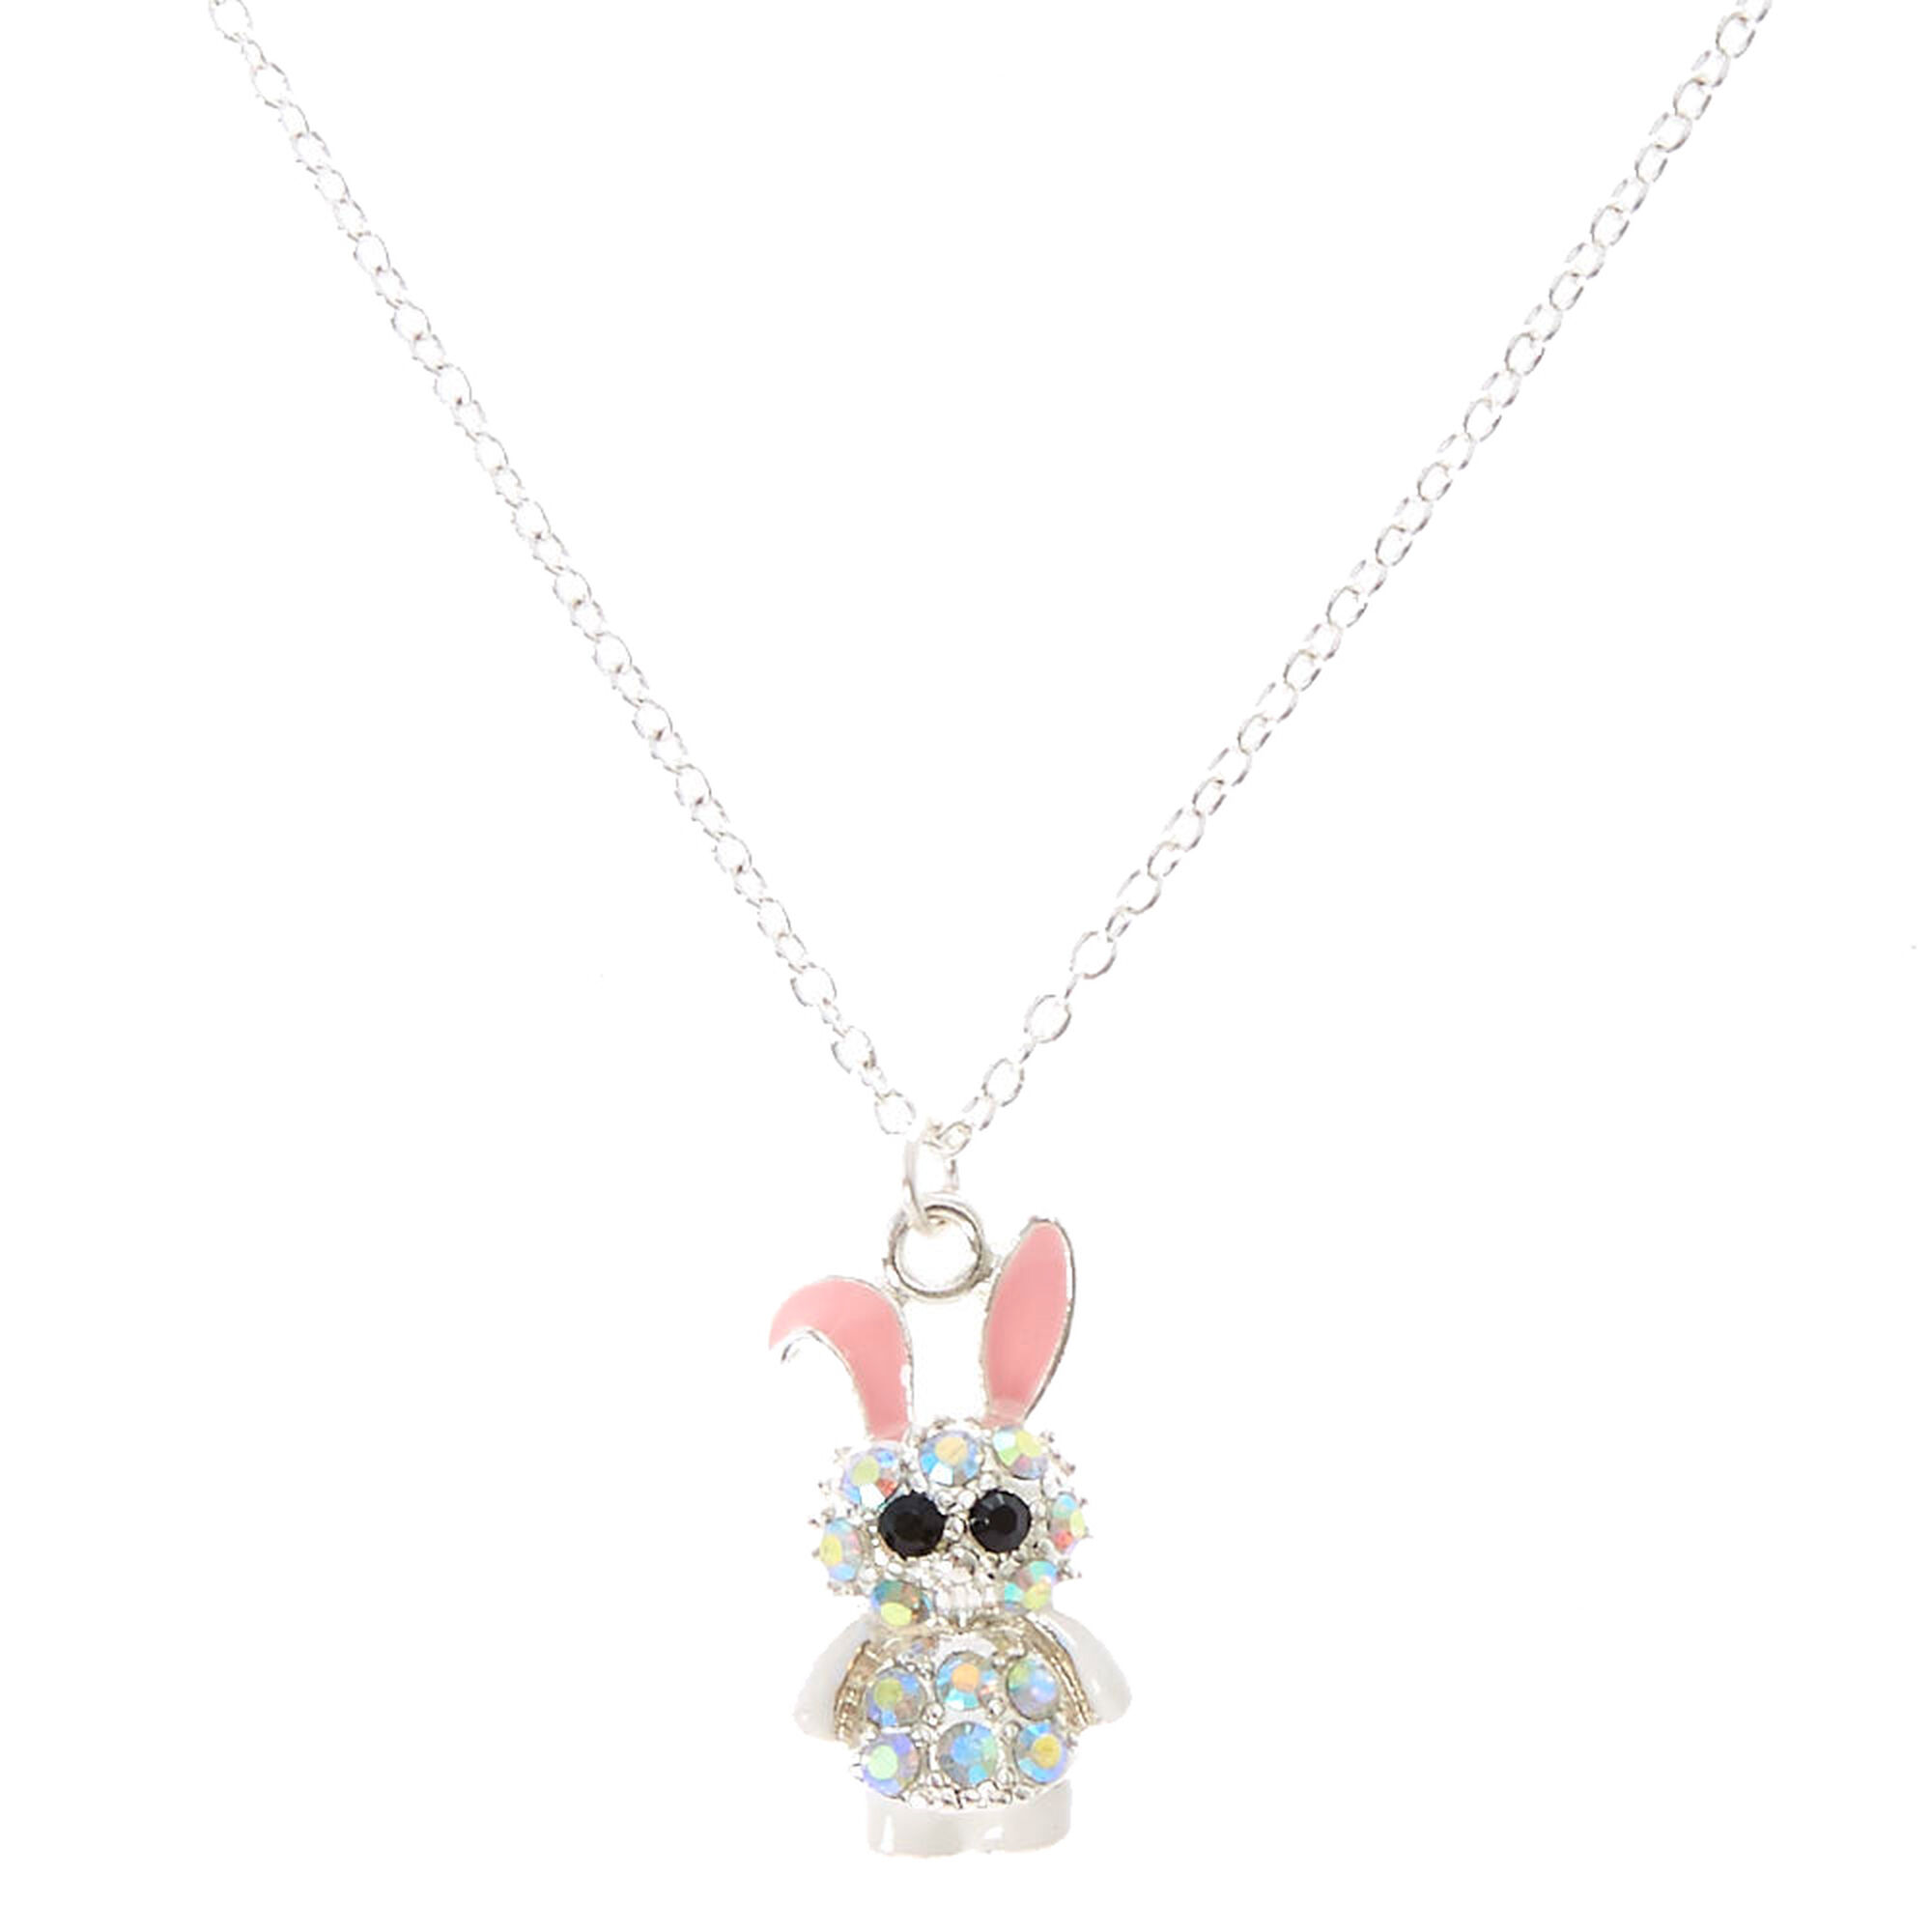 Iridescent crystal bunny pendant necklace claires iridescent crystal bunny pendant necklace aloadofball Images